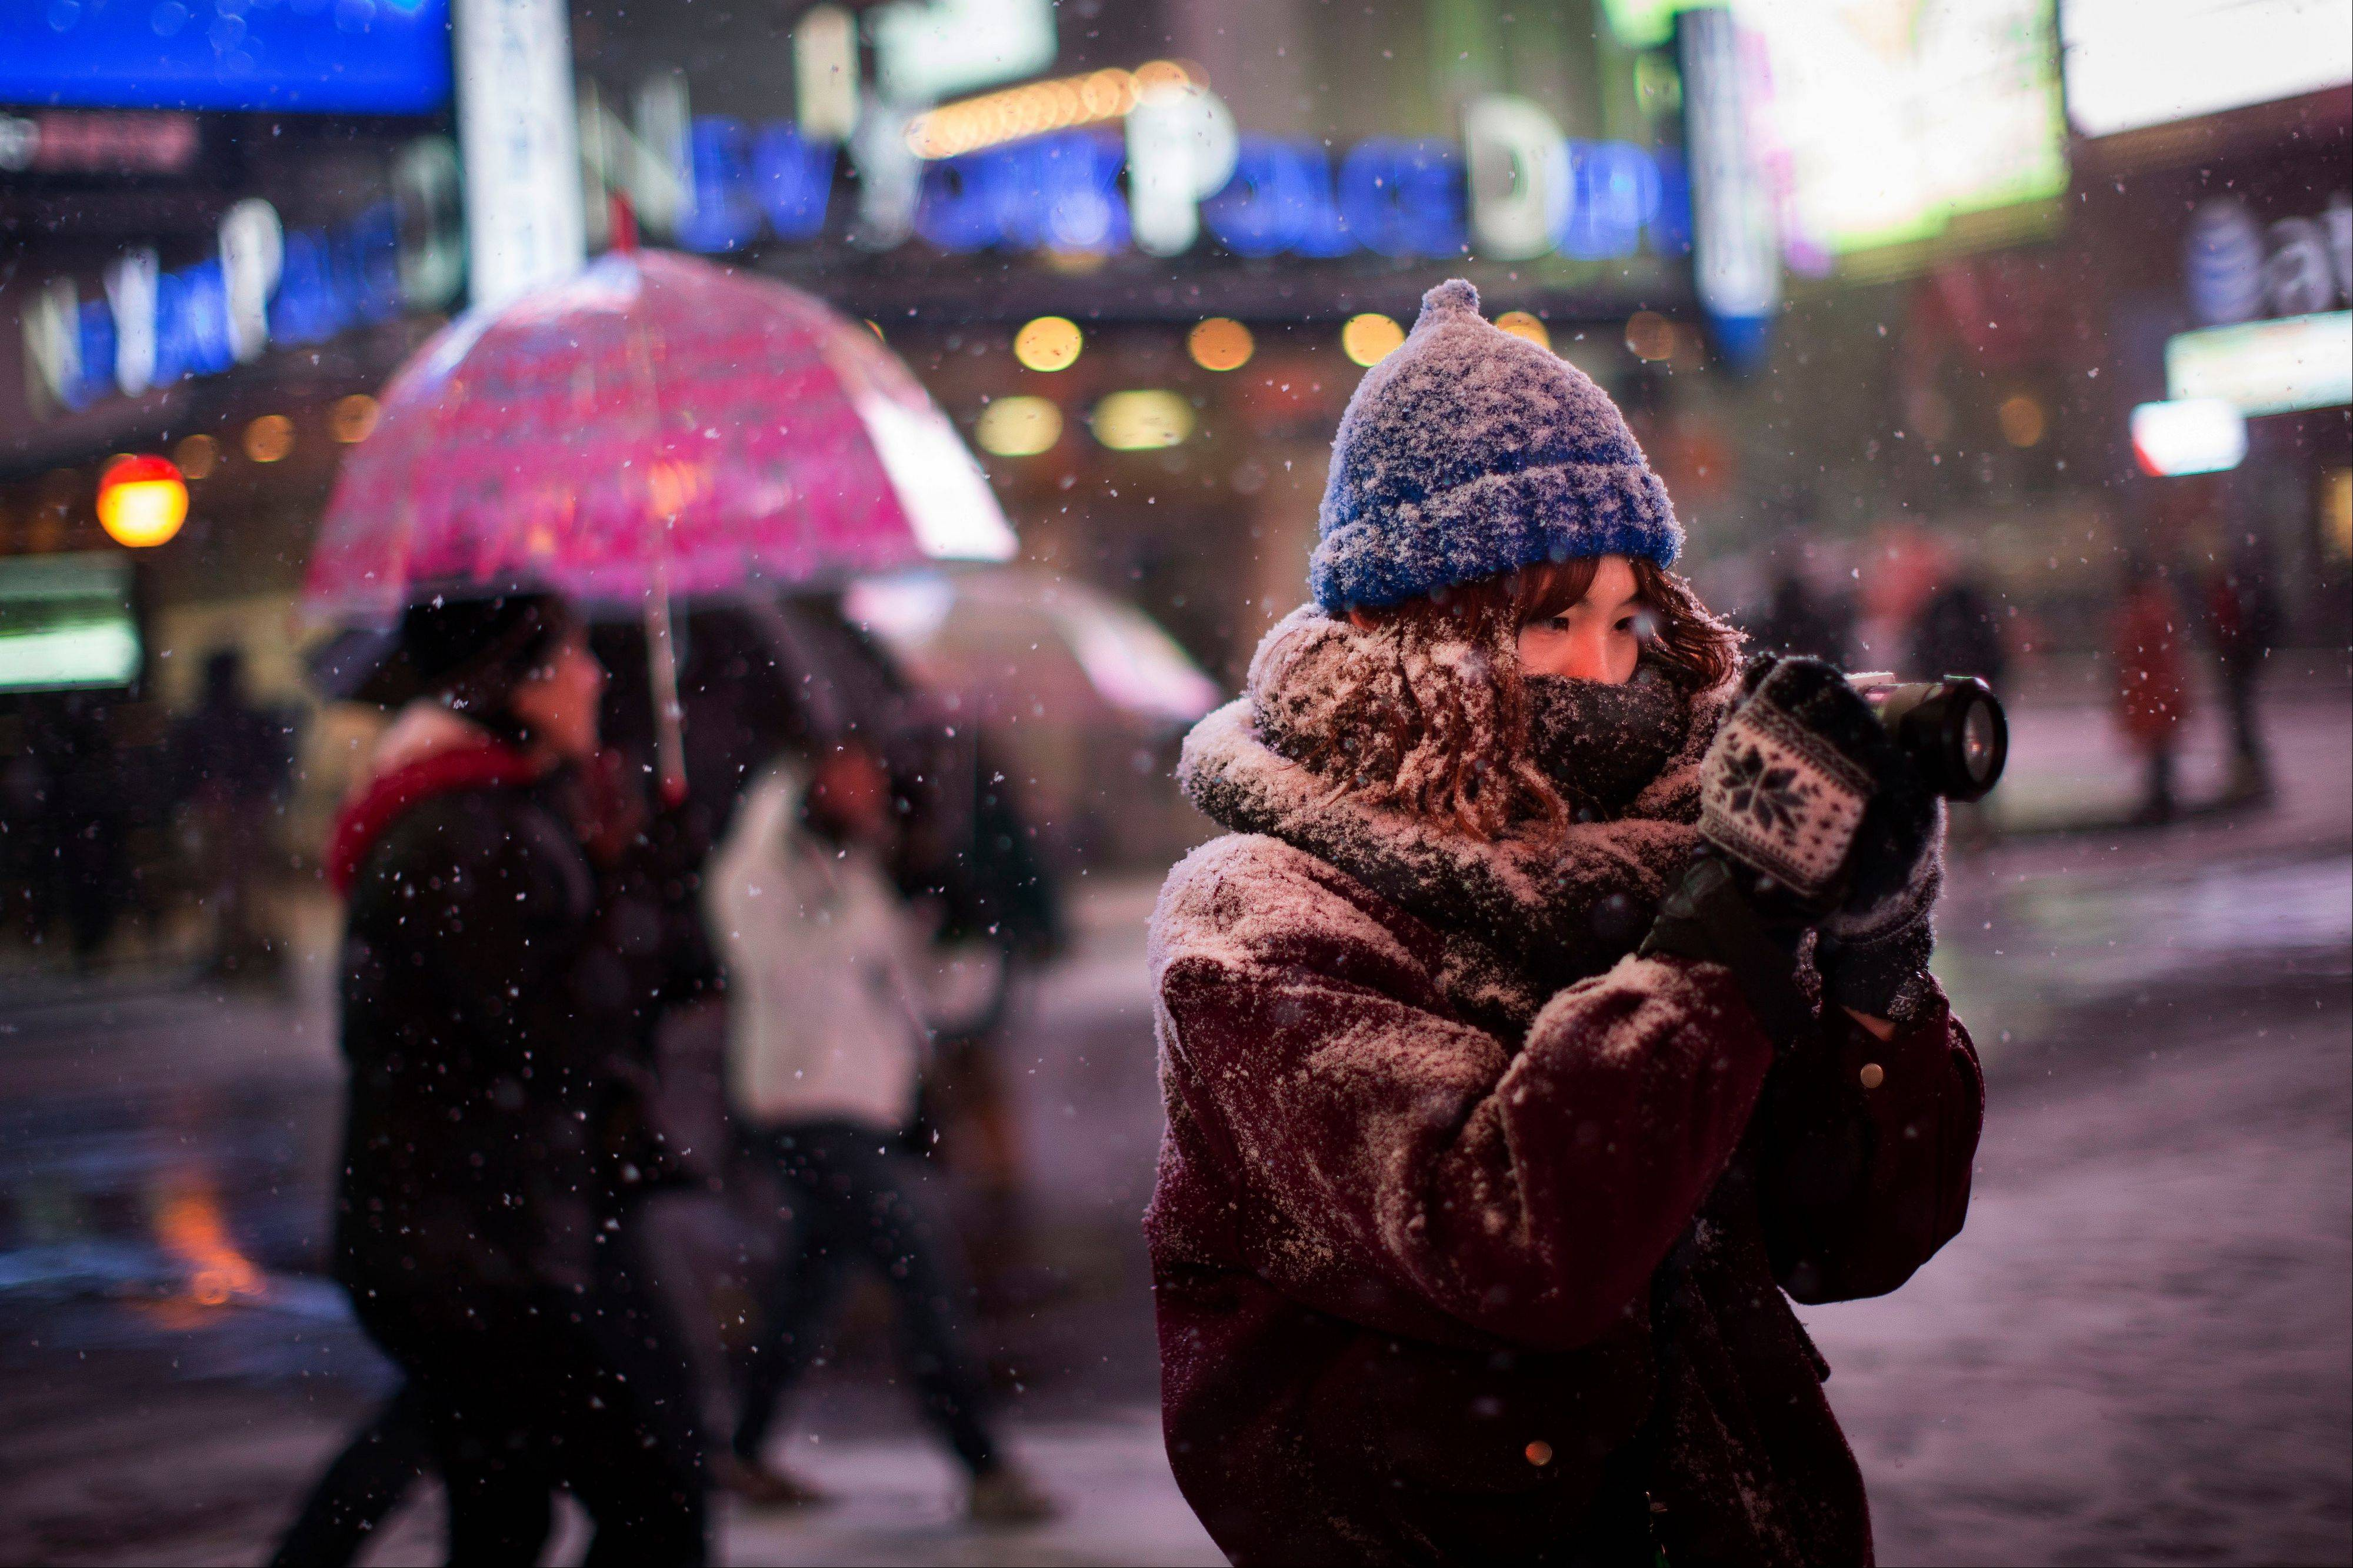 A pedestrian takes a photograph under falling snow in Times Square, Thursday, Jan. 2, 2014, in New York. The storm is expected to bring snow, stiff winds and punishing cold into the Northeast.